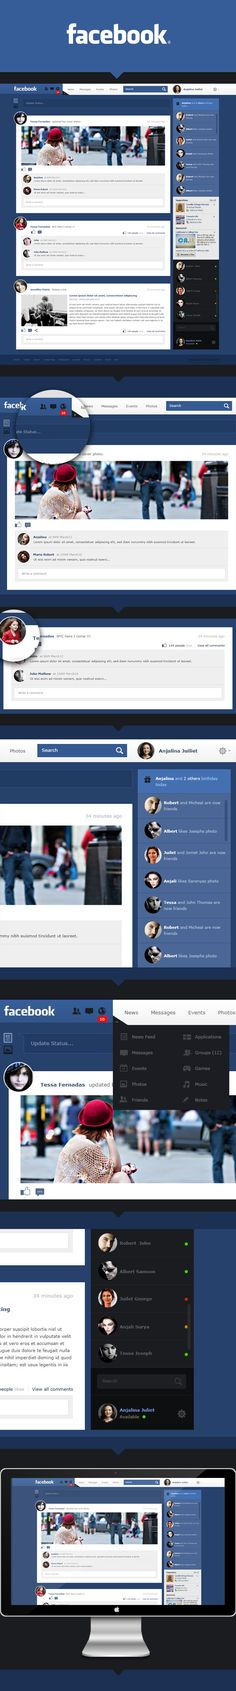 Facebook Redesign Concept by Monish, via Behance